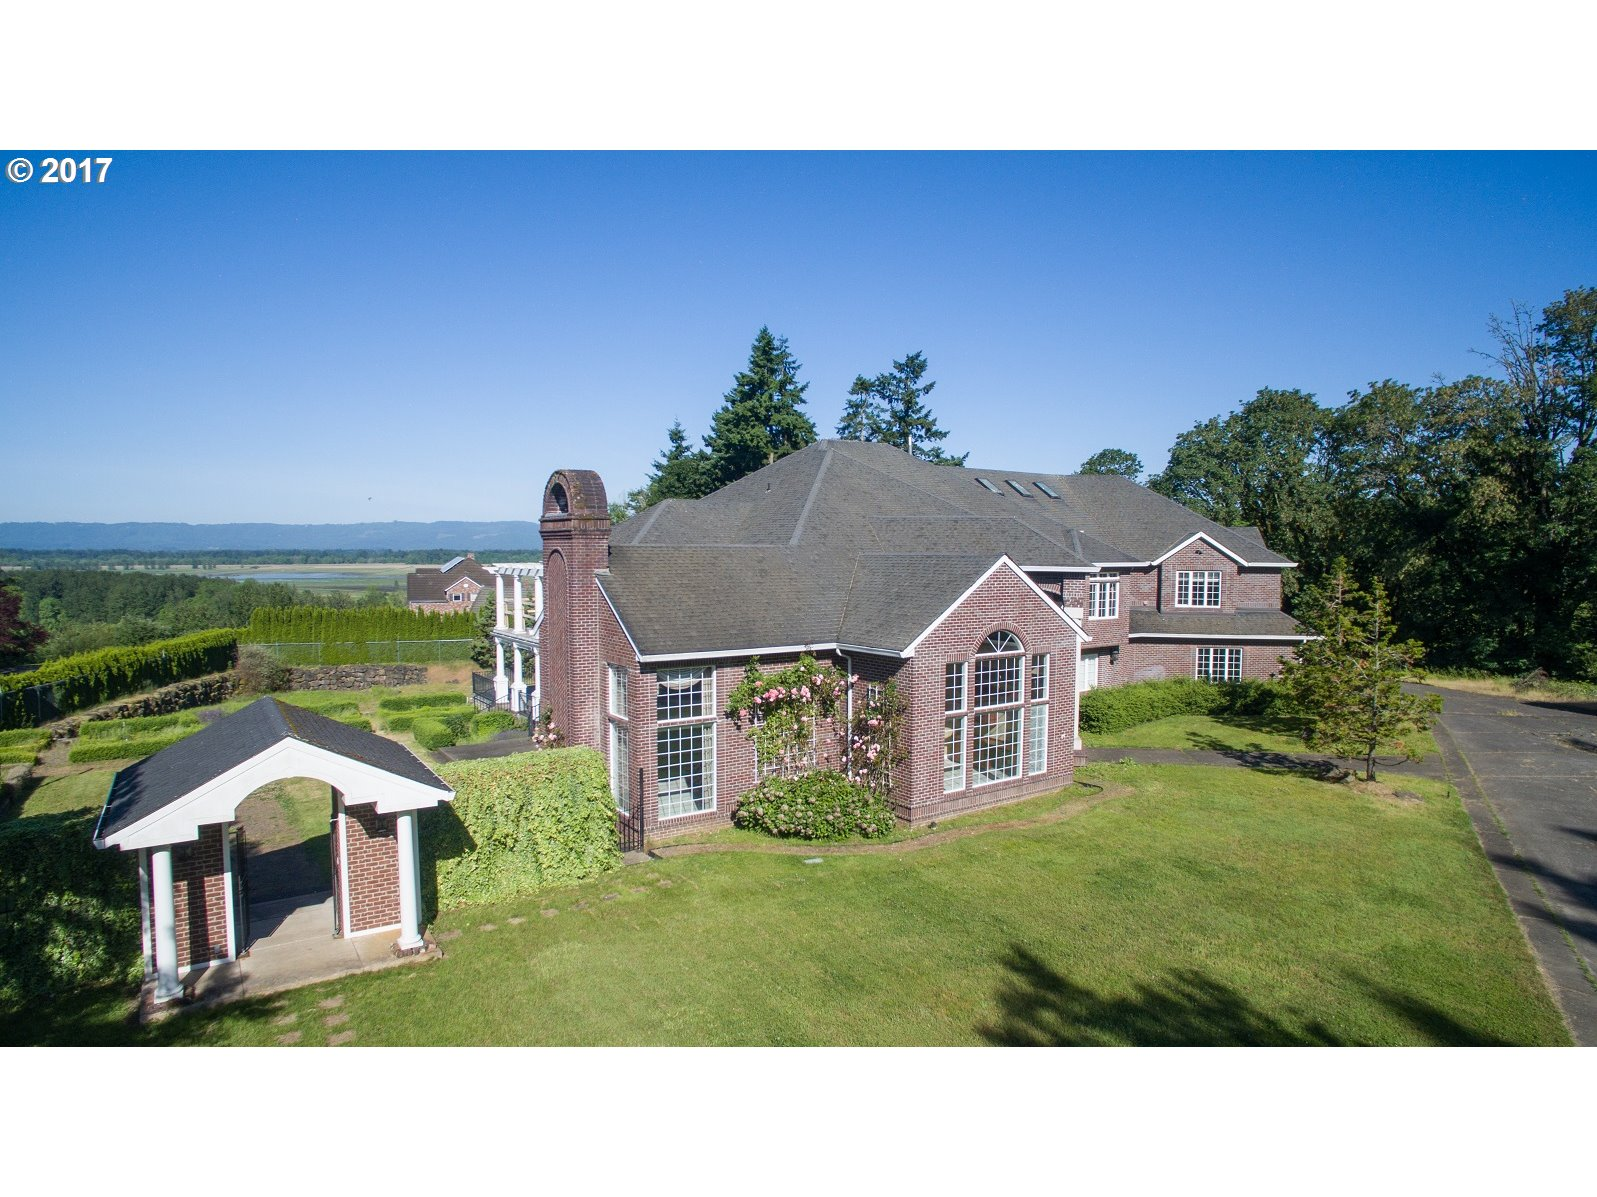 11203 sq. ft 5 bedrooms 6 bathrooms  House ,Vancouver, WA